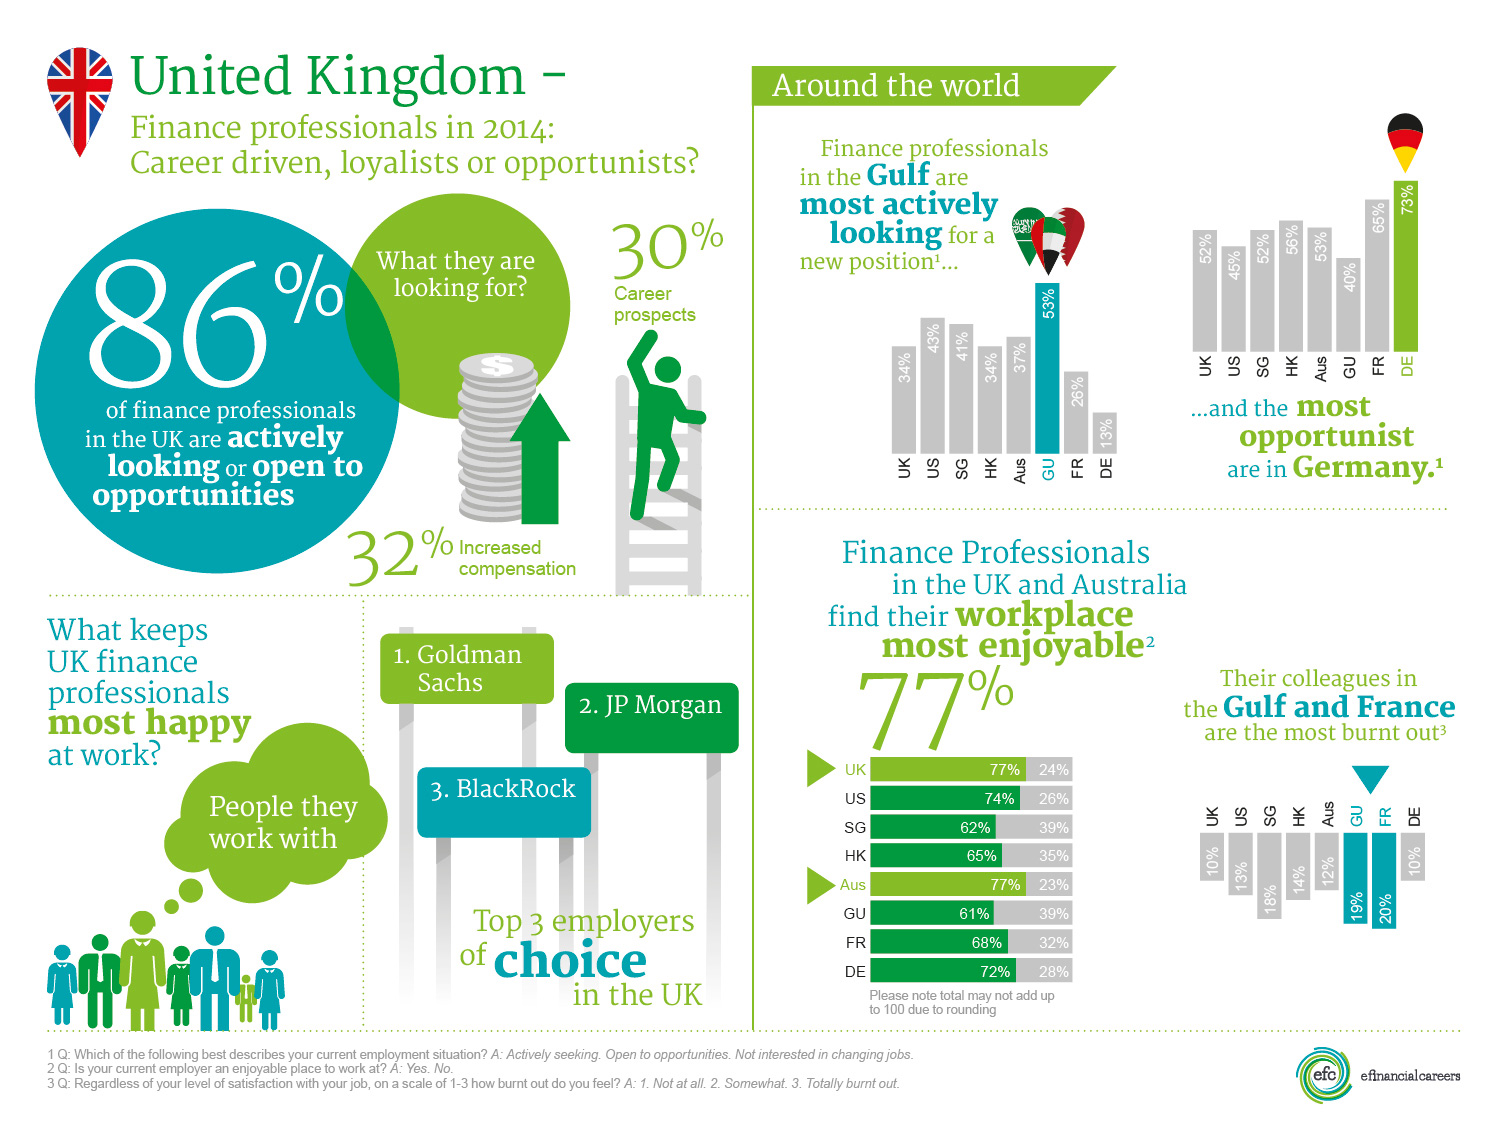 Careers In Finance In The UK